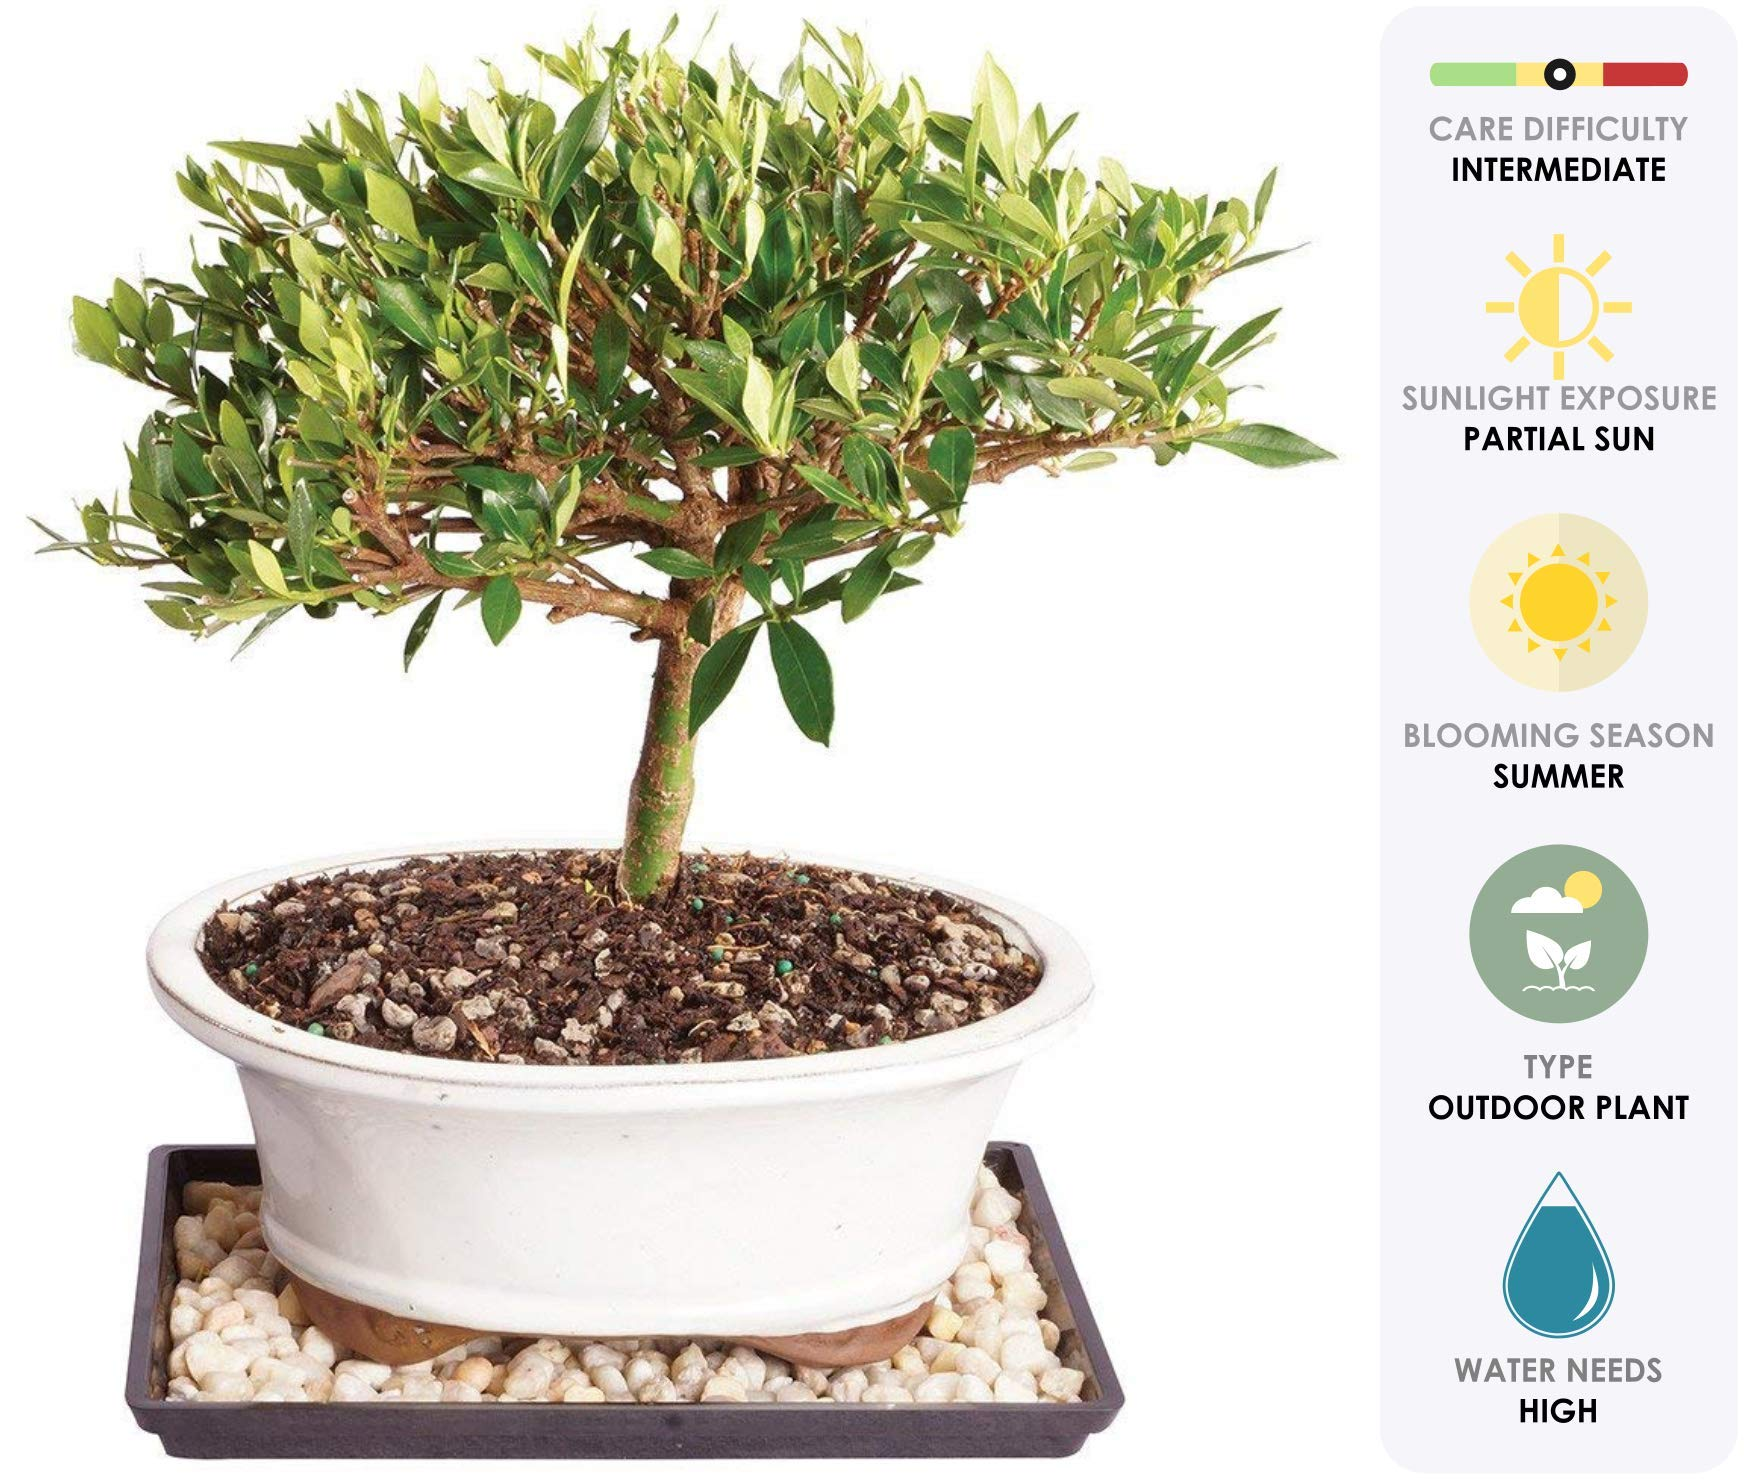 Brussel's Live Gardenia Outdoor Bonsai Tree - 8 Years Old; 8'' to 12'' Tall with Decorative Container, Humidity Tray & Deco Rock - Not Sold in Arizona by Brussel's Bonsai (Image #1)